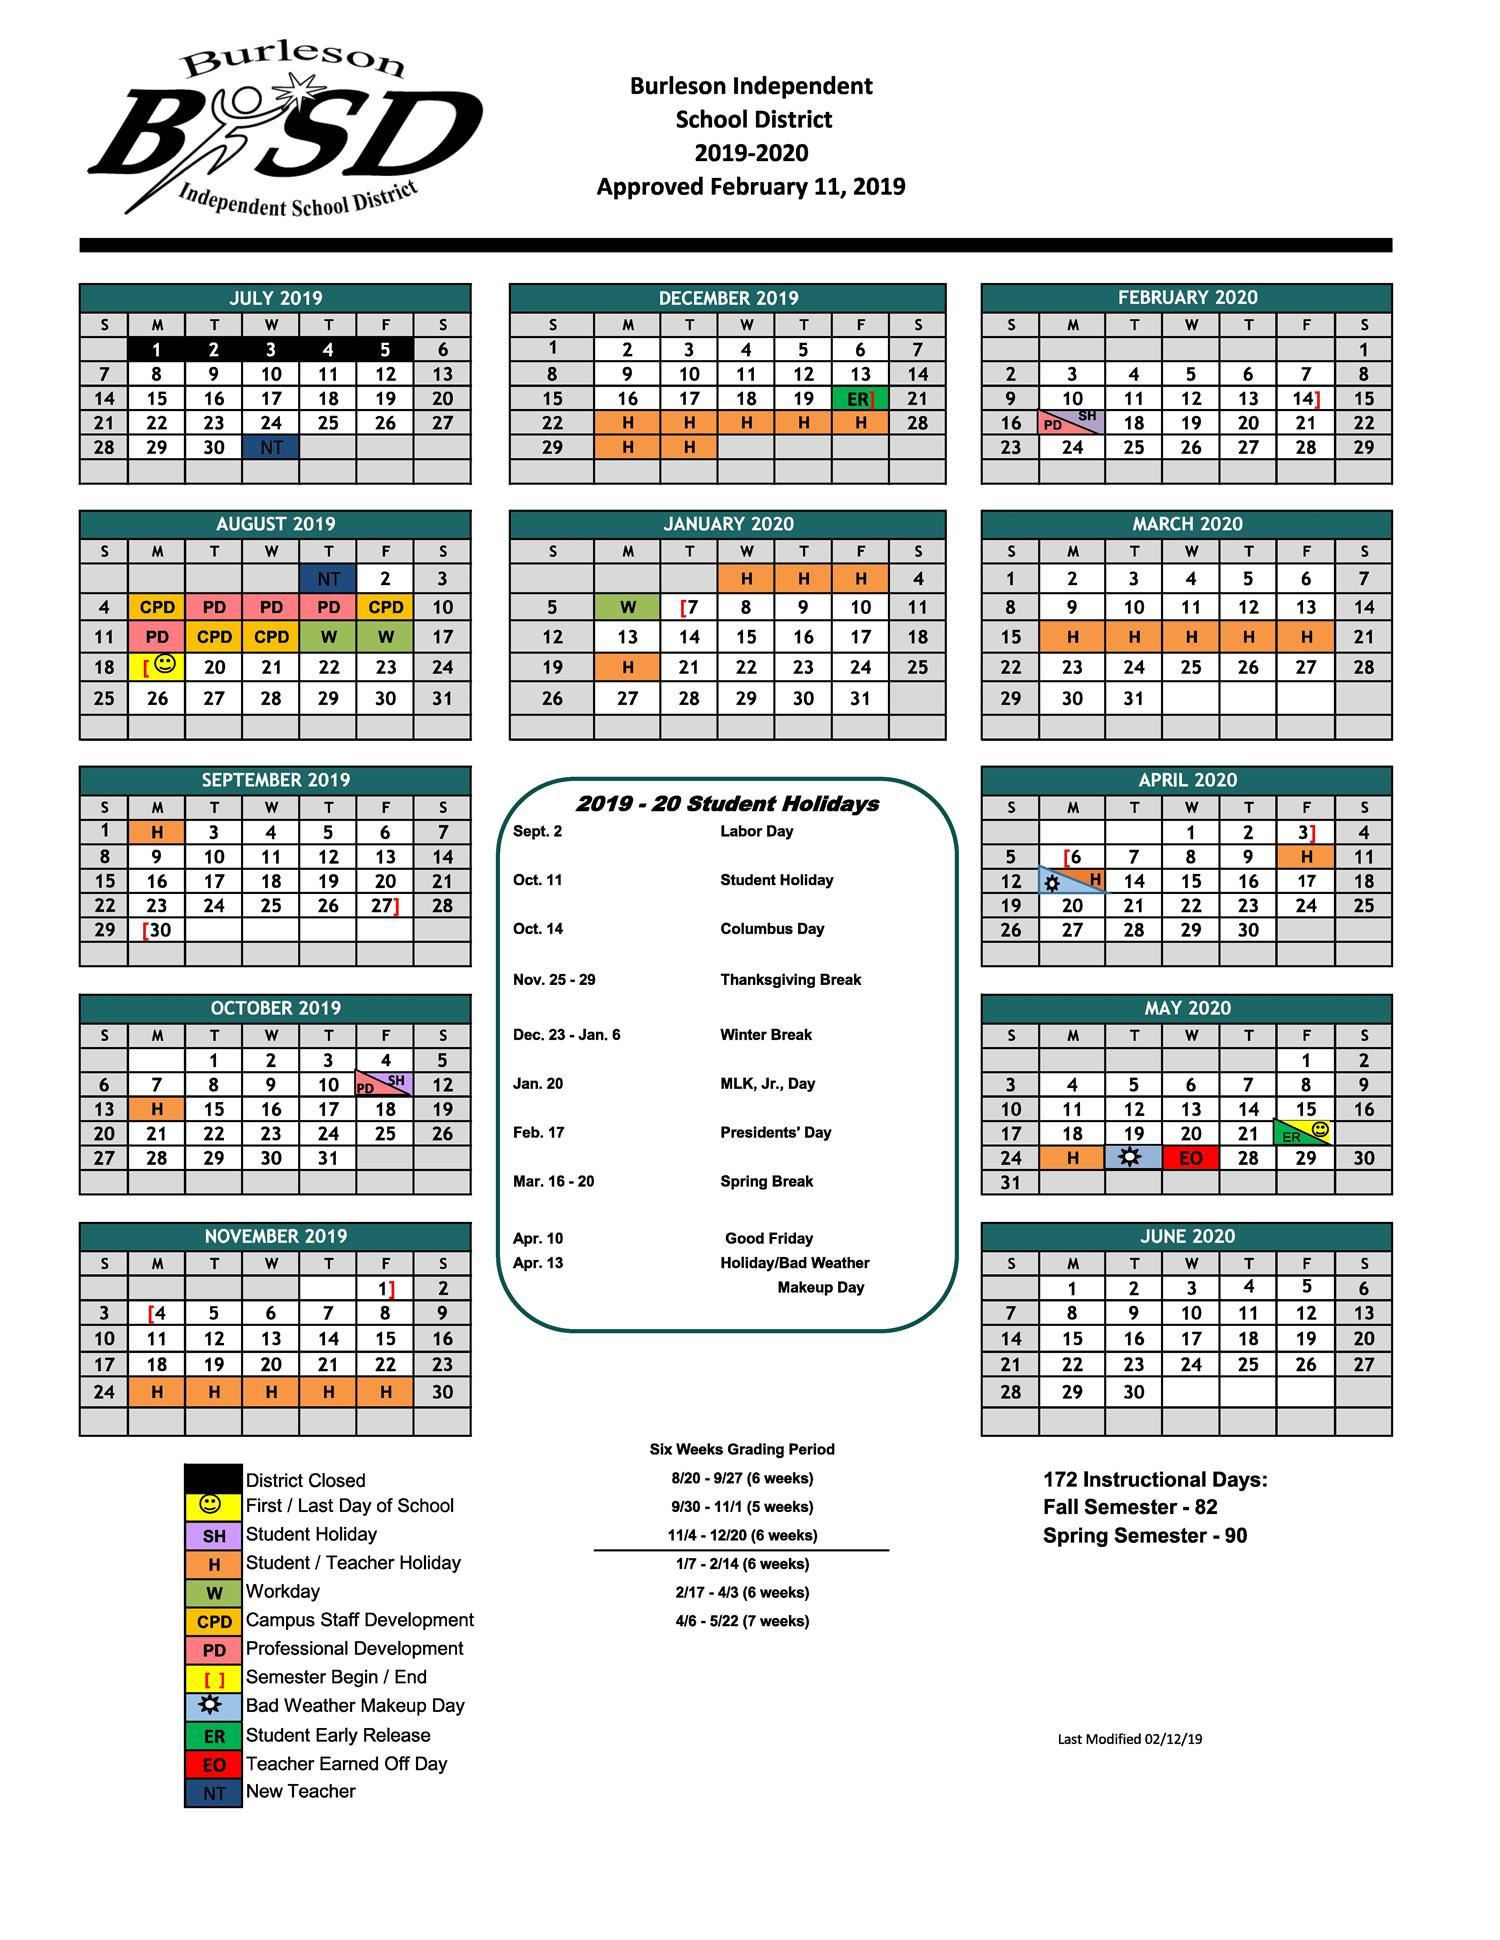 Burleson ISD Student Calendar for 2020-2021 School Year